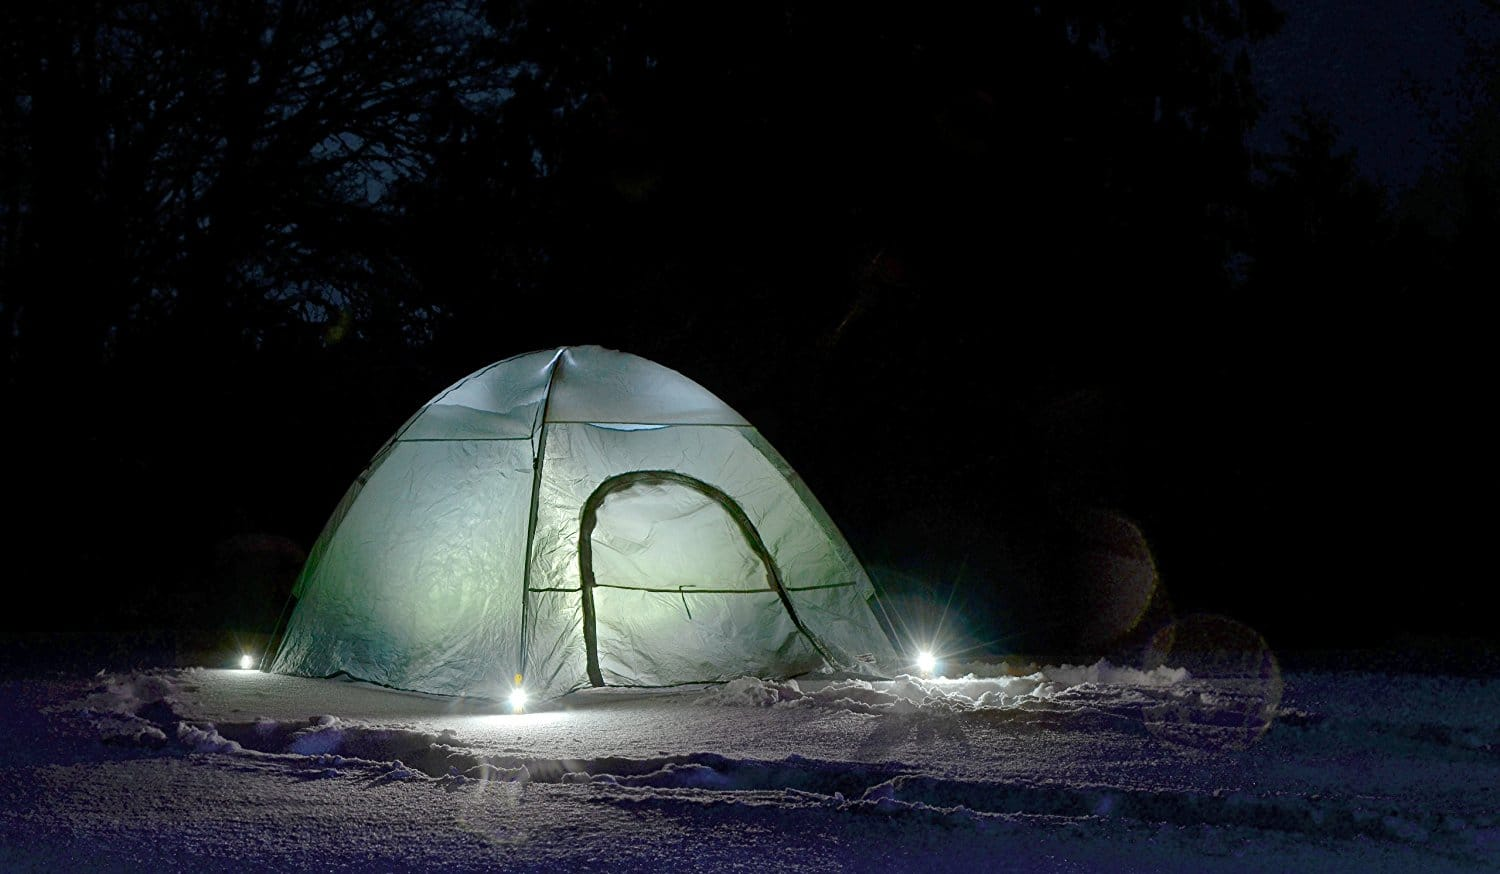 StakeLight LED Tent Stake Add Safety to the Campground 5